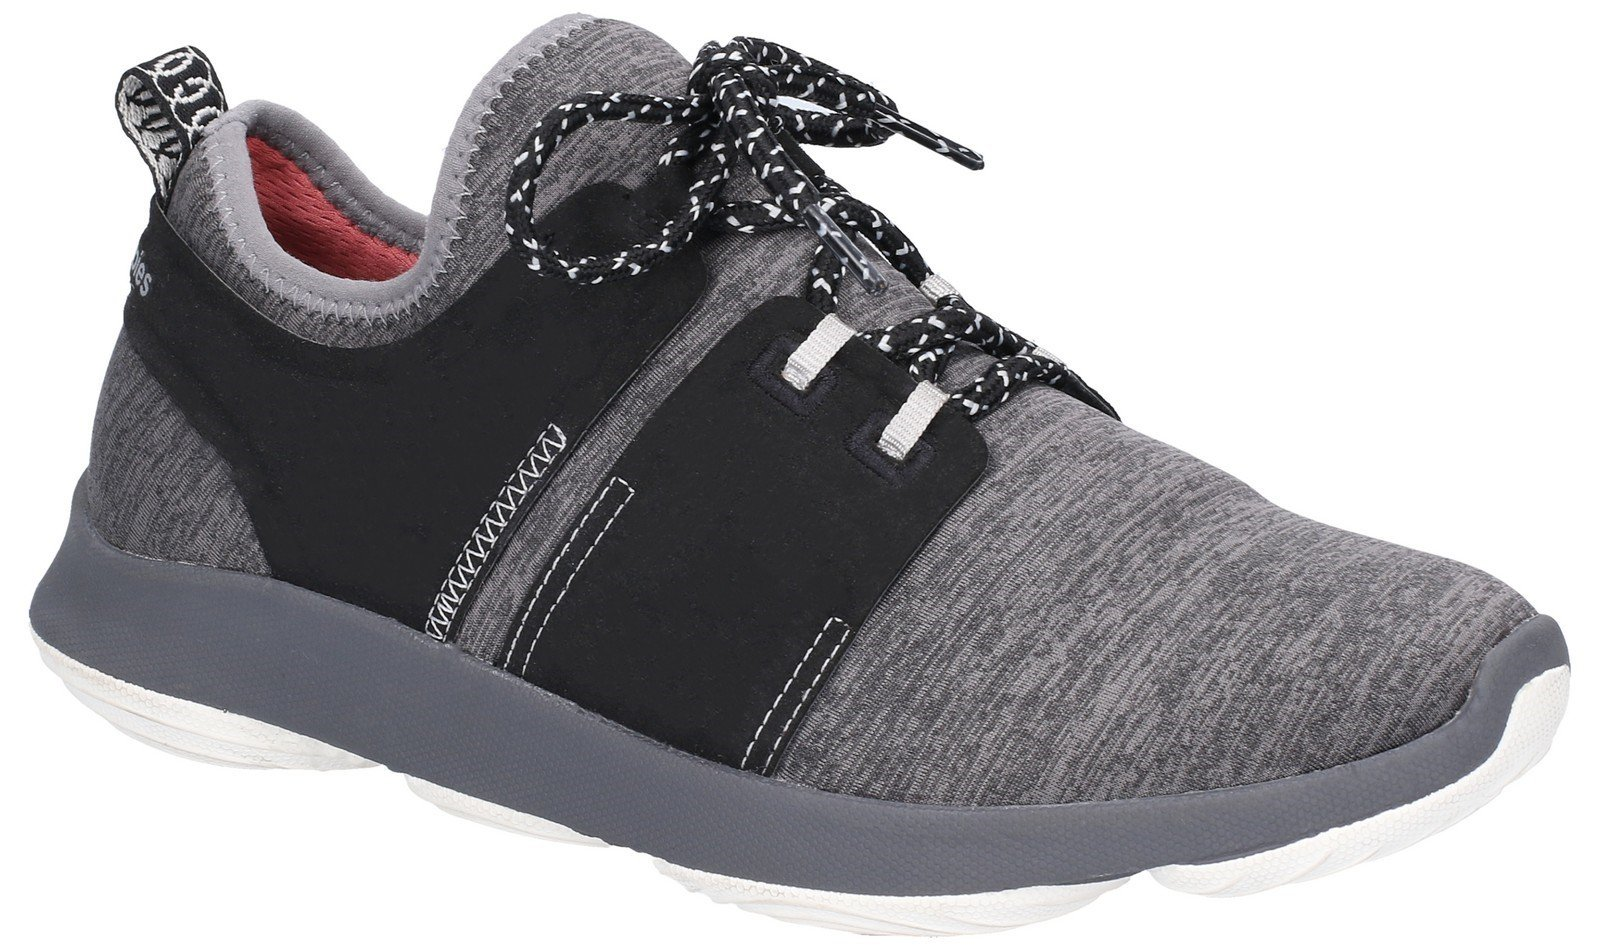 Hush Puppies Women's Geo BounceMax Lace Up Trainer Various Colours 28182 - Dark Grey 3